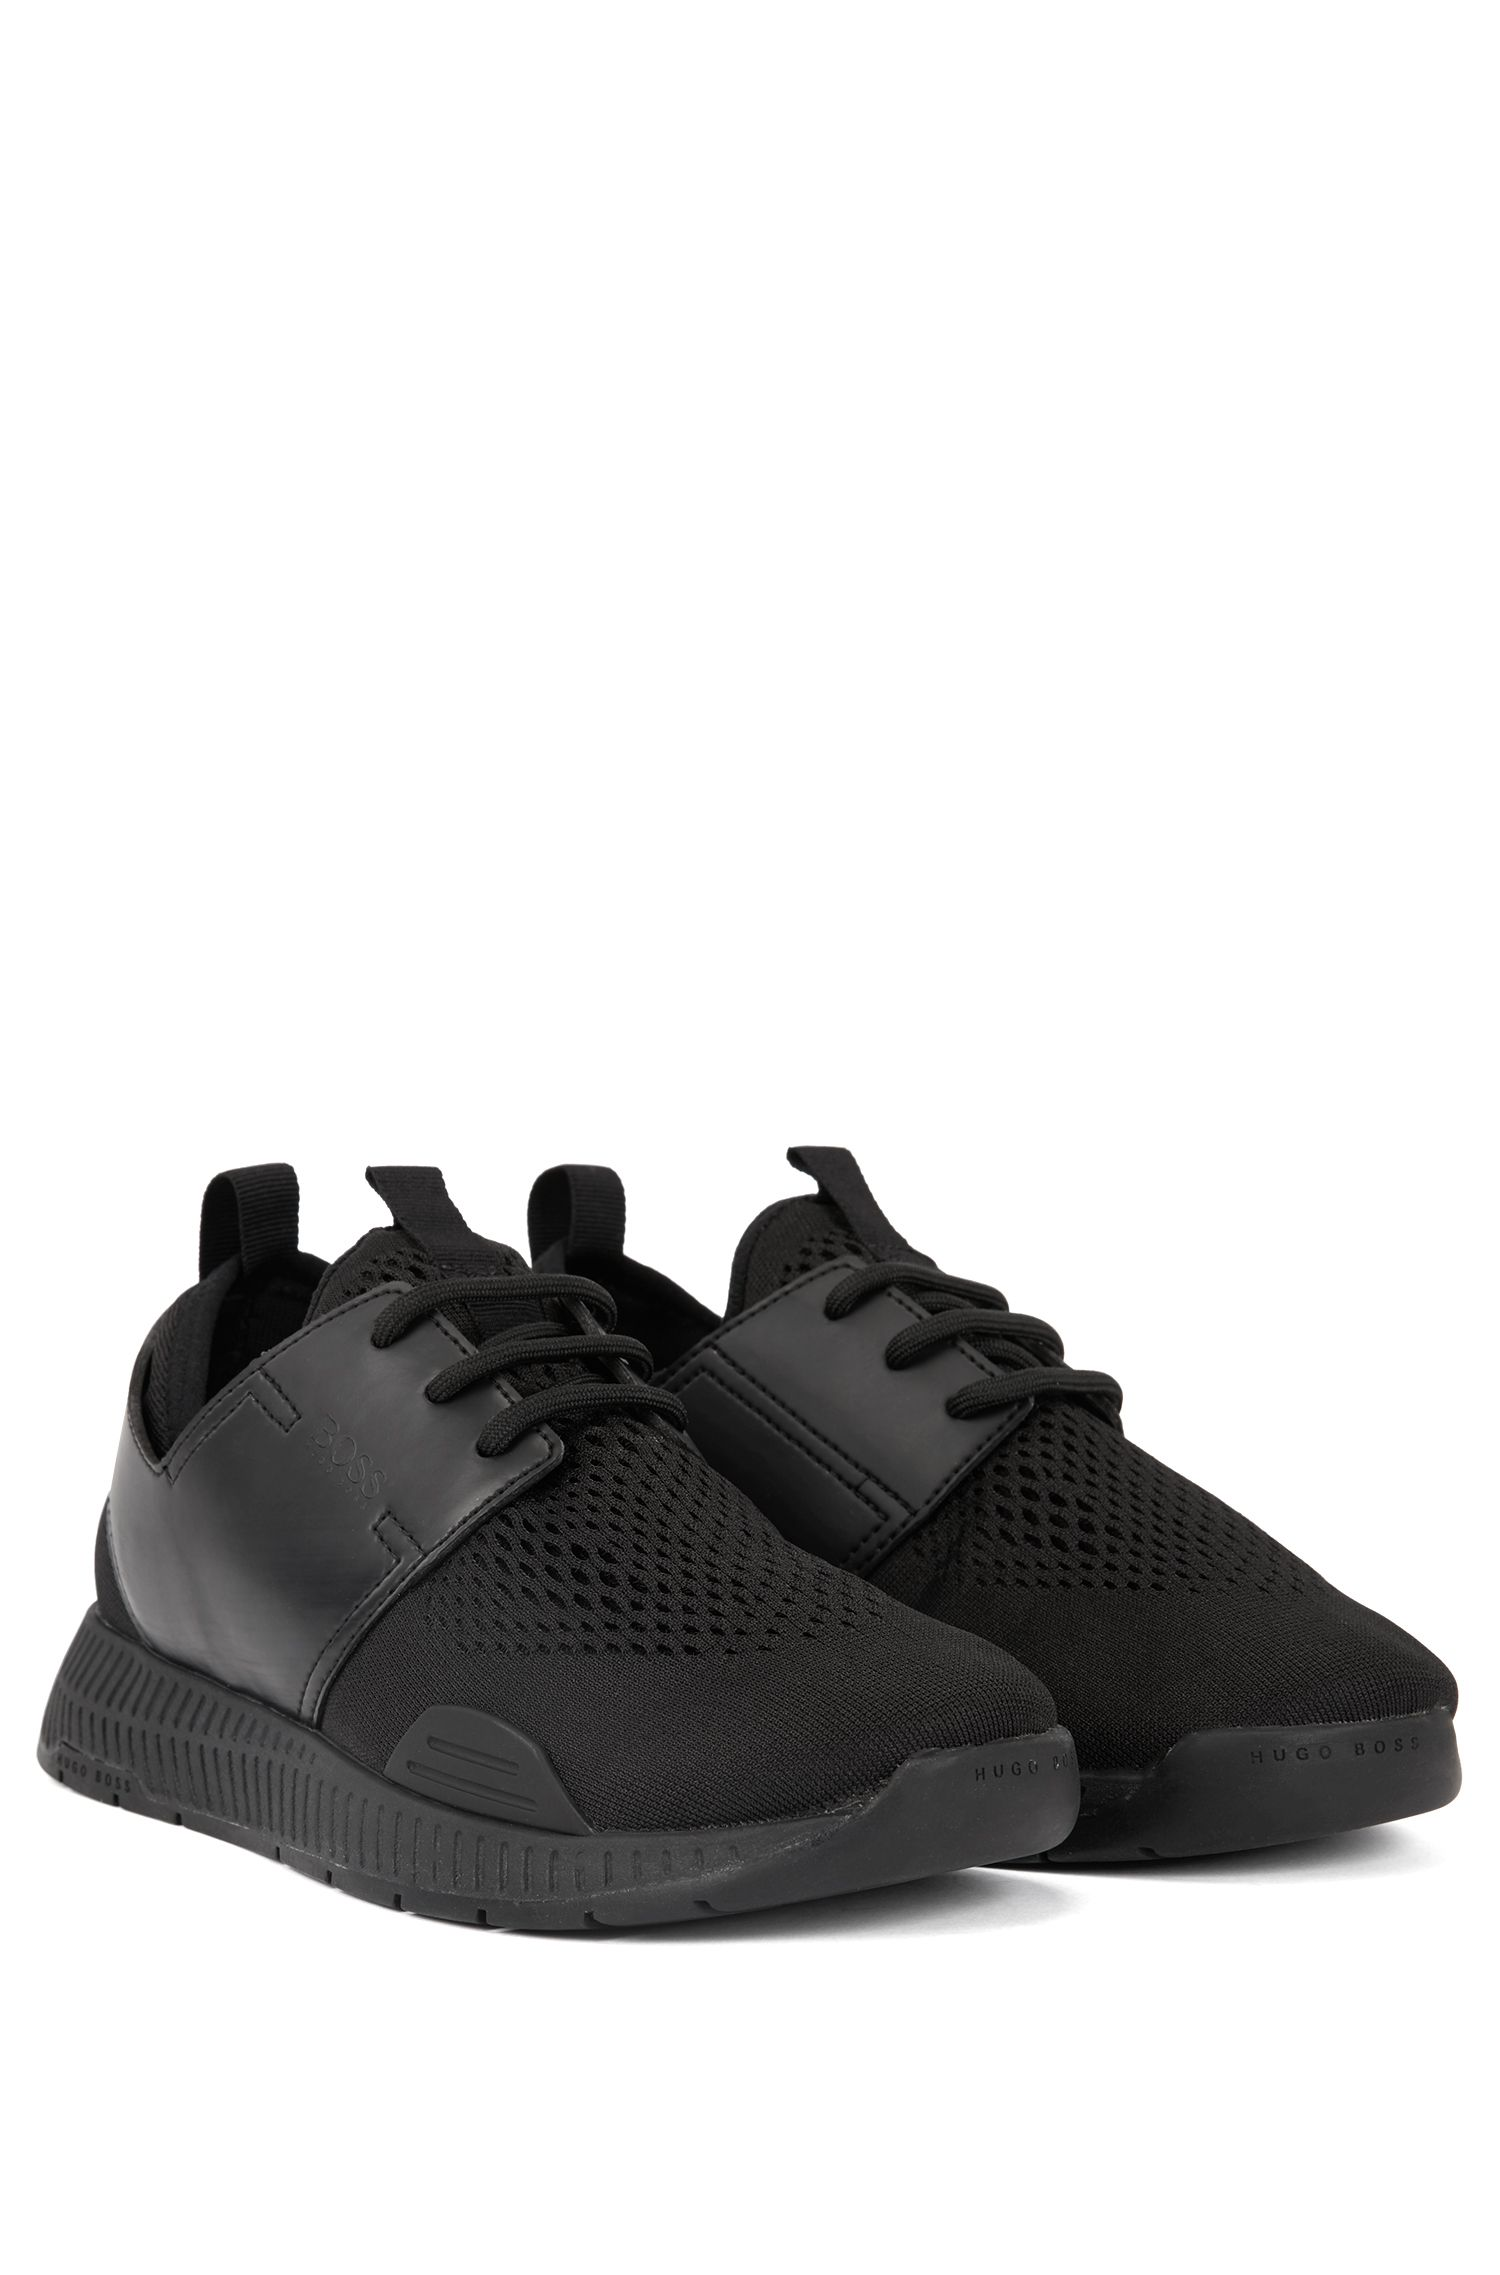 Unisex low-top trainers with perforated mesh uppers, Black